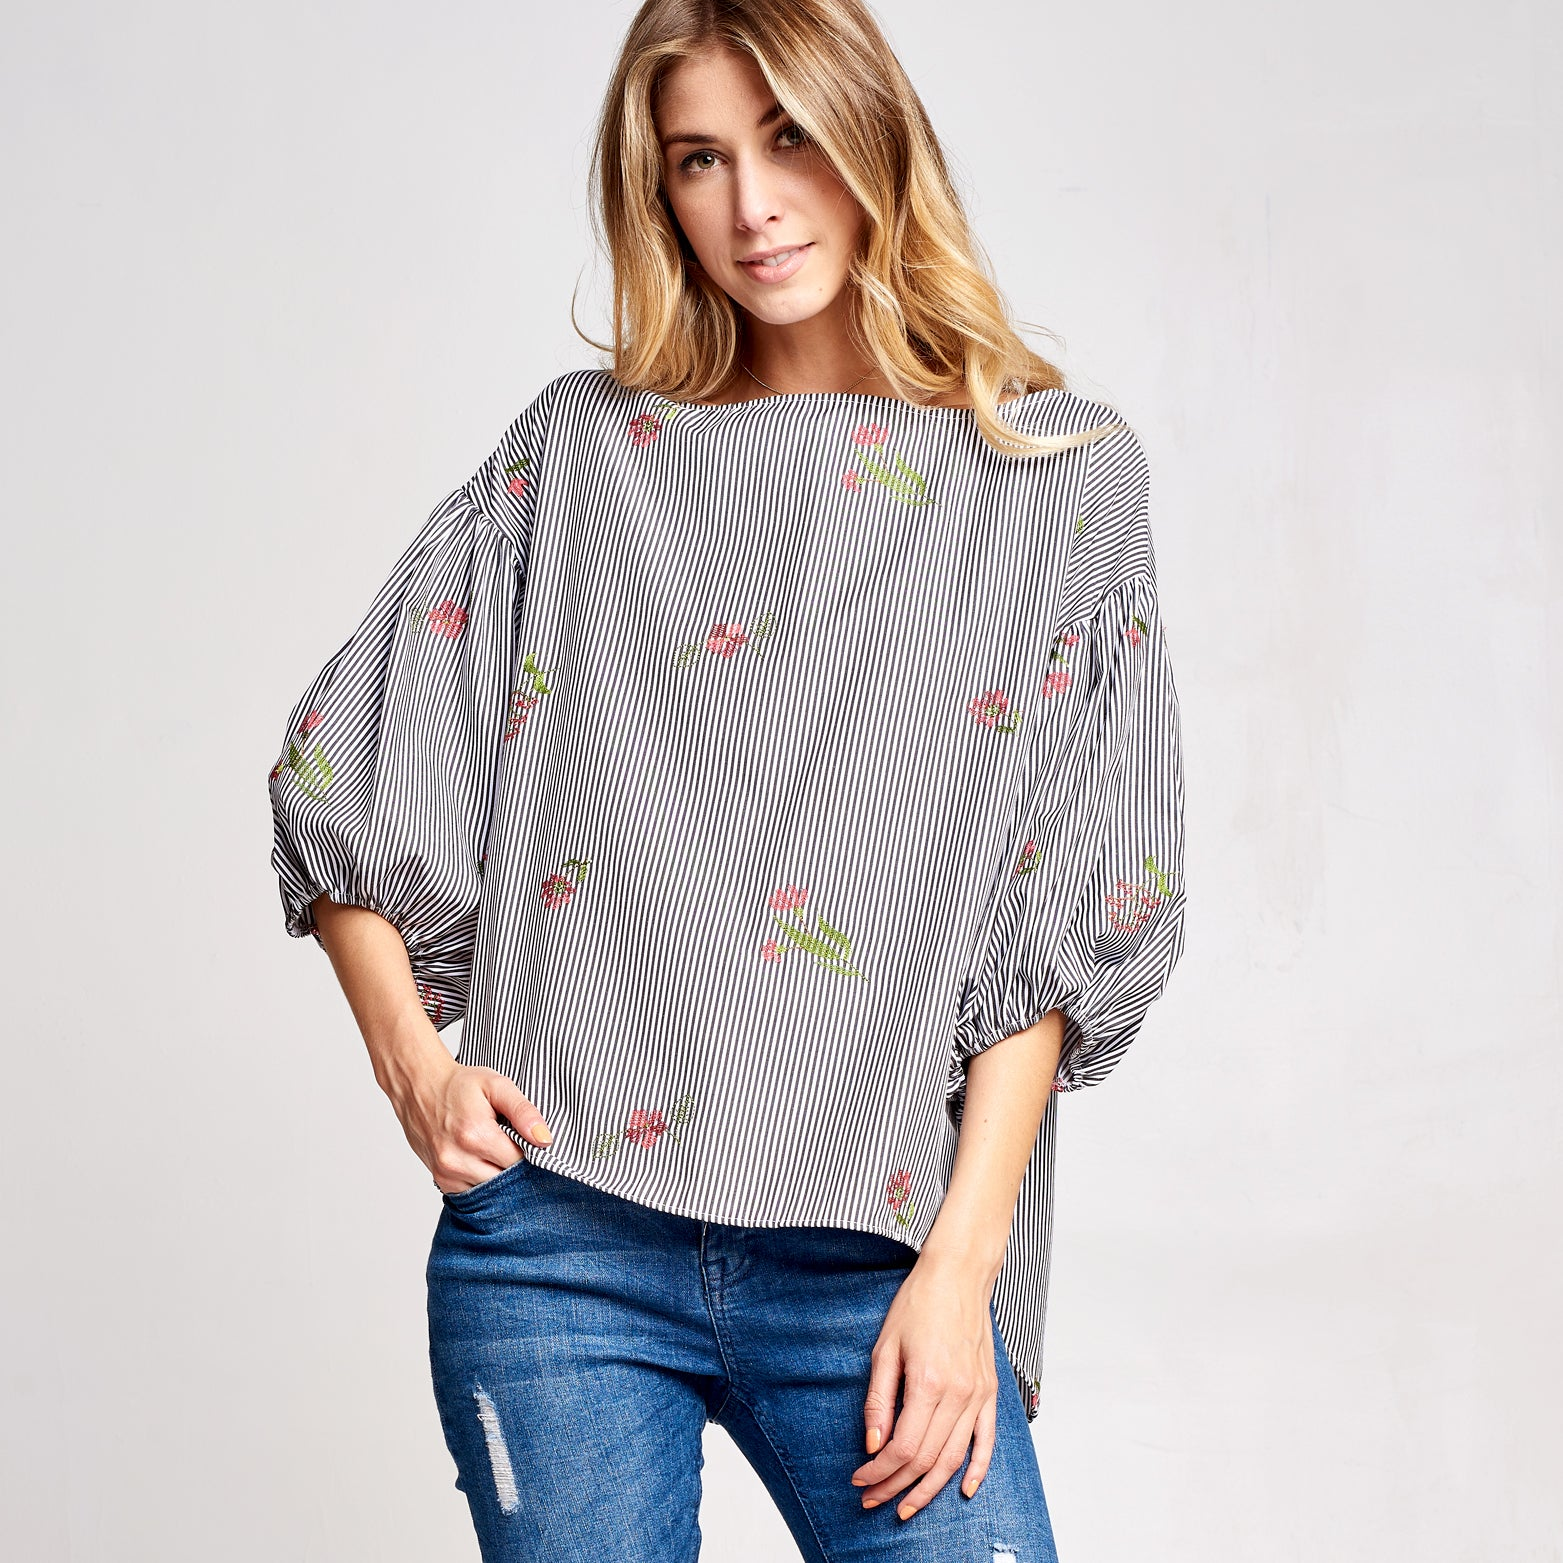 Floral Embroidered Stripe Top